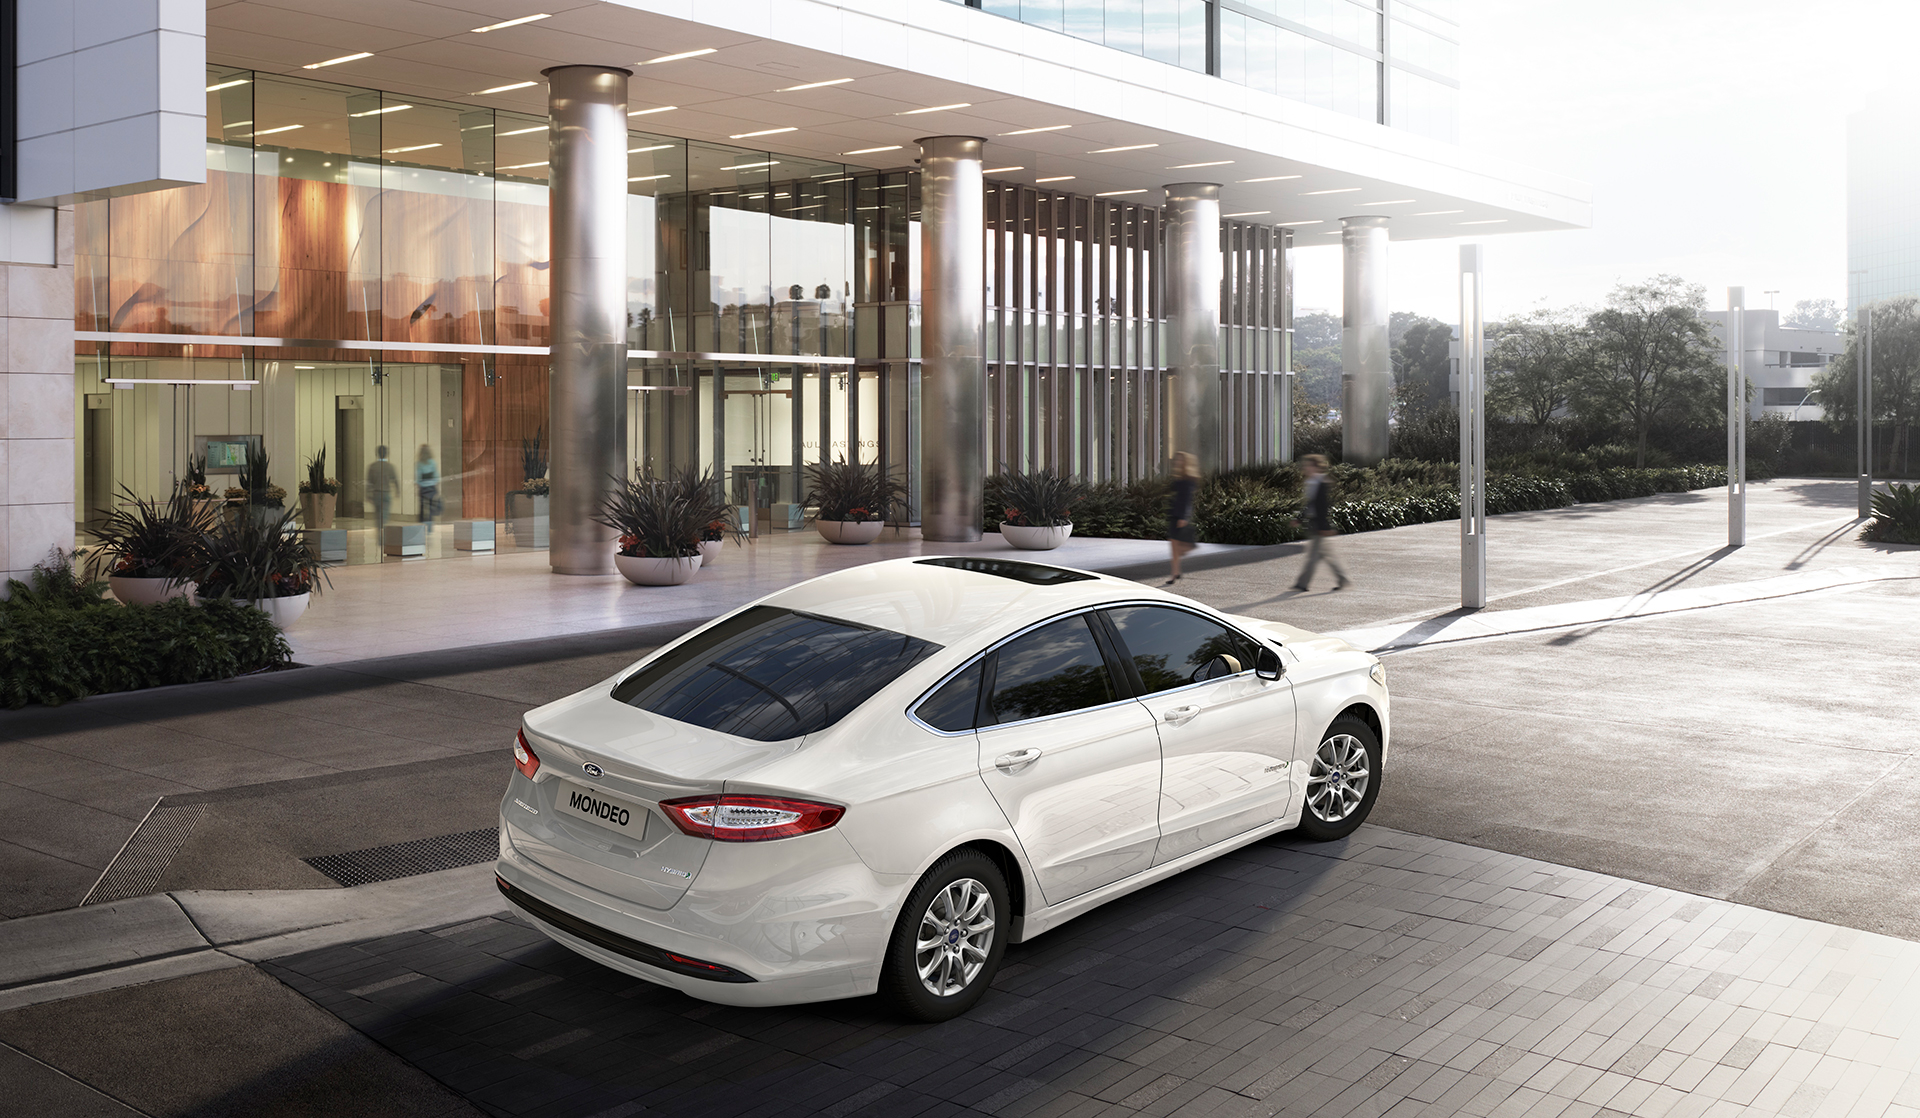 Ford Mondeo Hybrid 2015 - arrière / rear